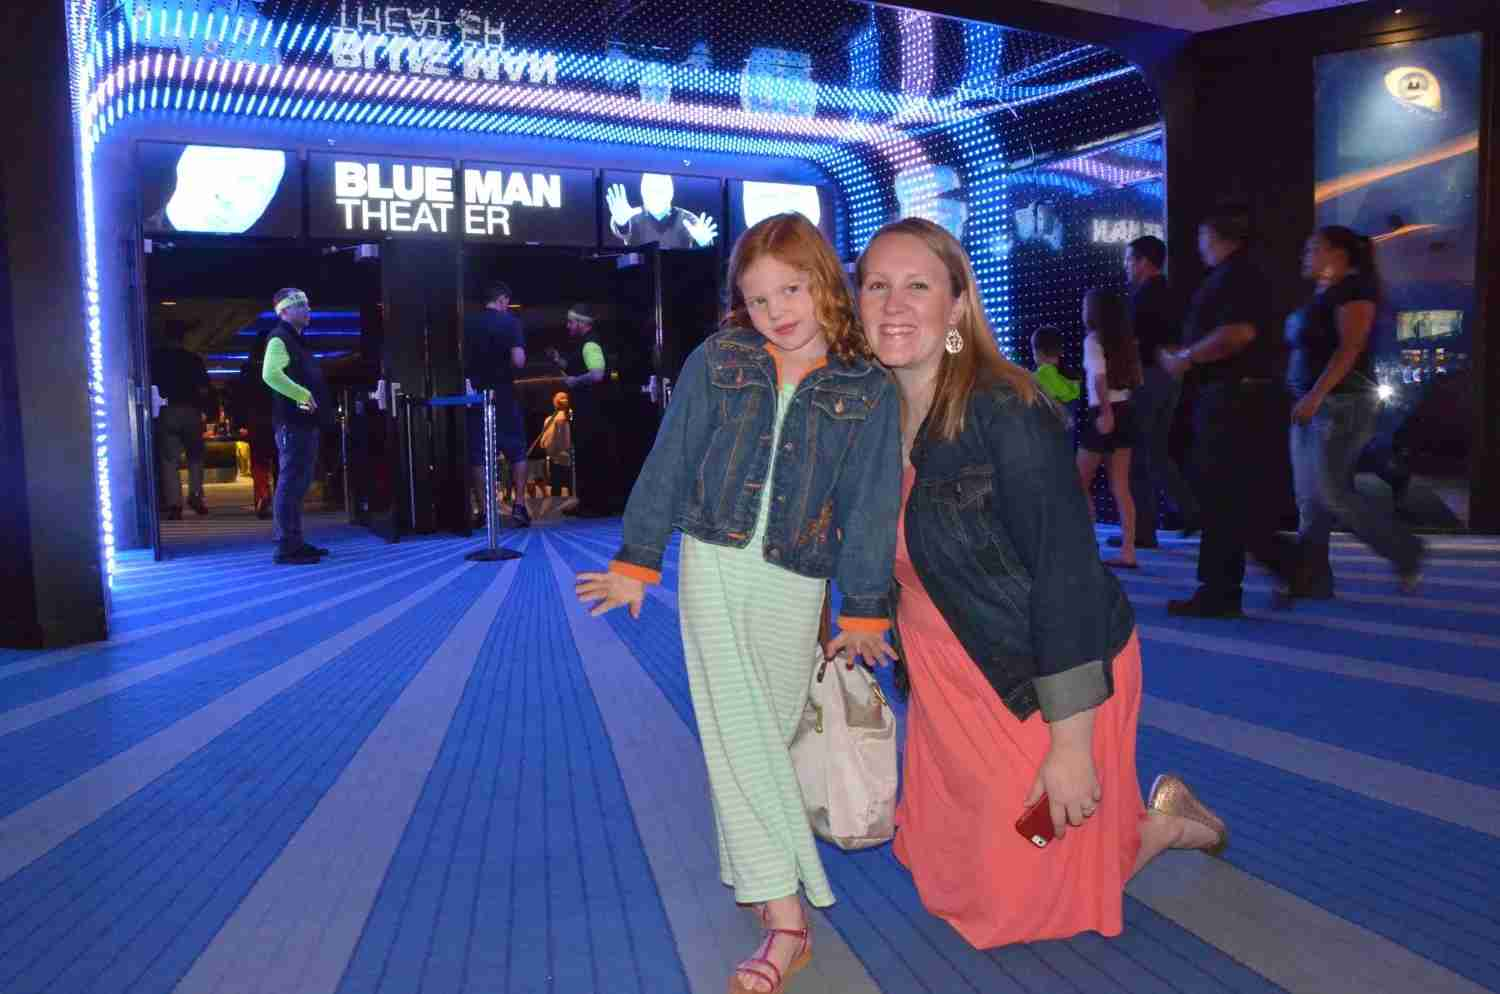 Las Vegas with kids - Blue Man Group show